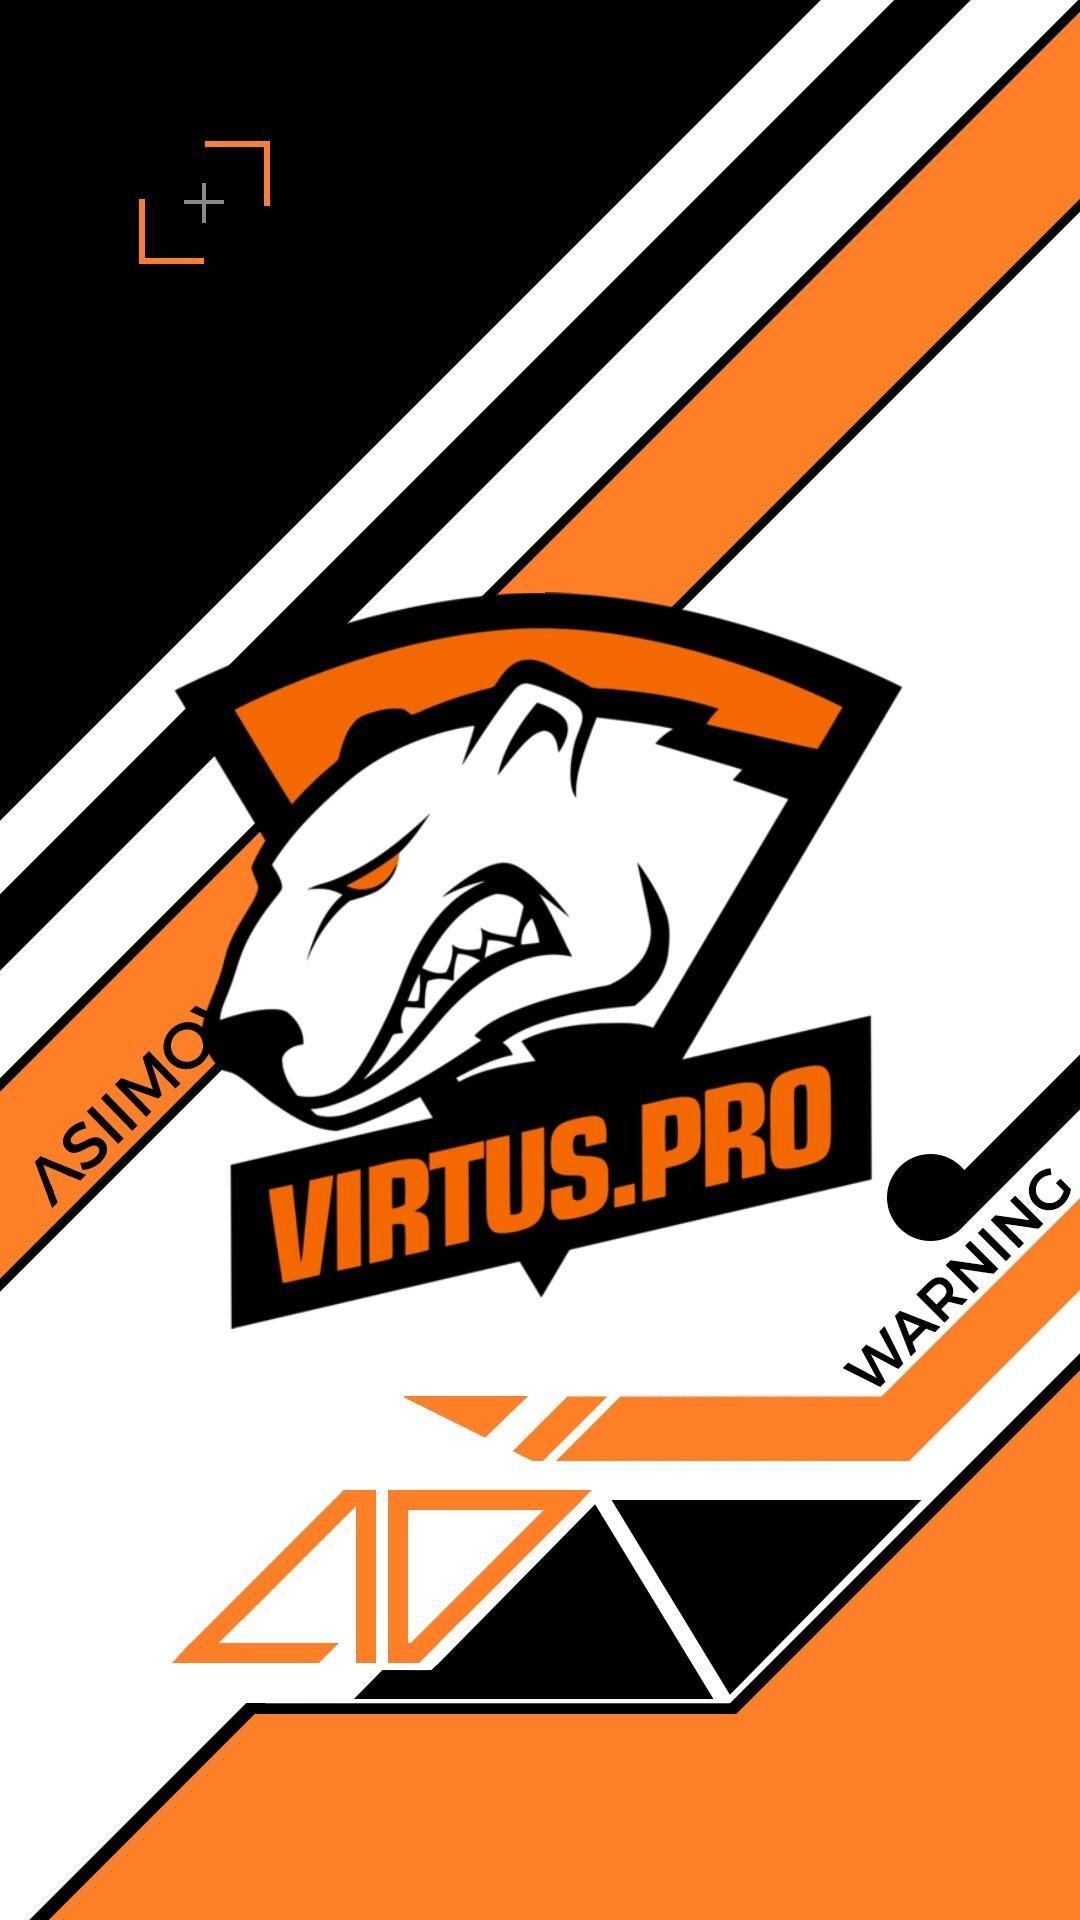 So I Made This Asiimov Virtus Pro Iphone Background Games Globaloffensive Csgo Counterstrike Hltv Cs St Go Wallpaper Logo Wallpaper Hd Iphone Background